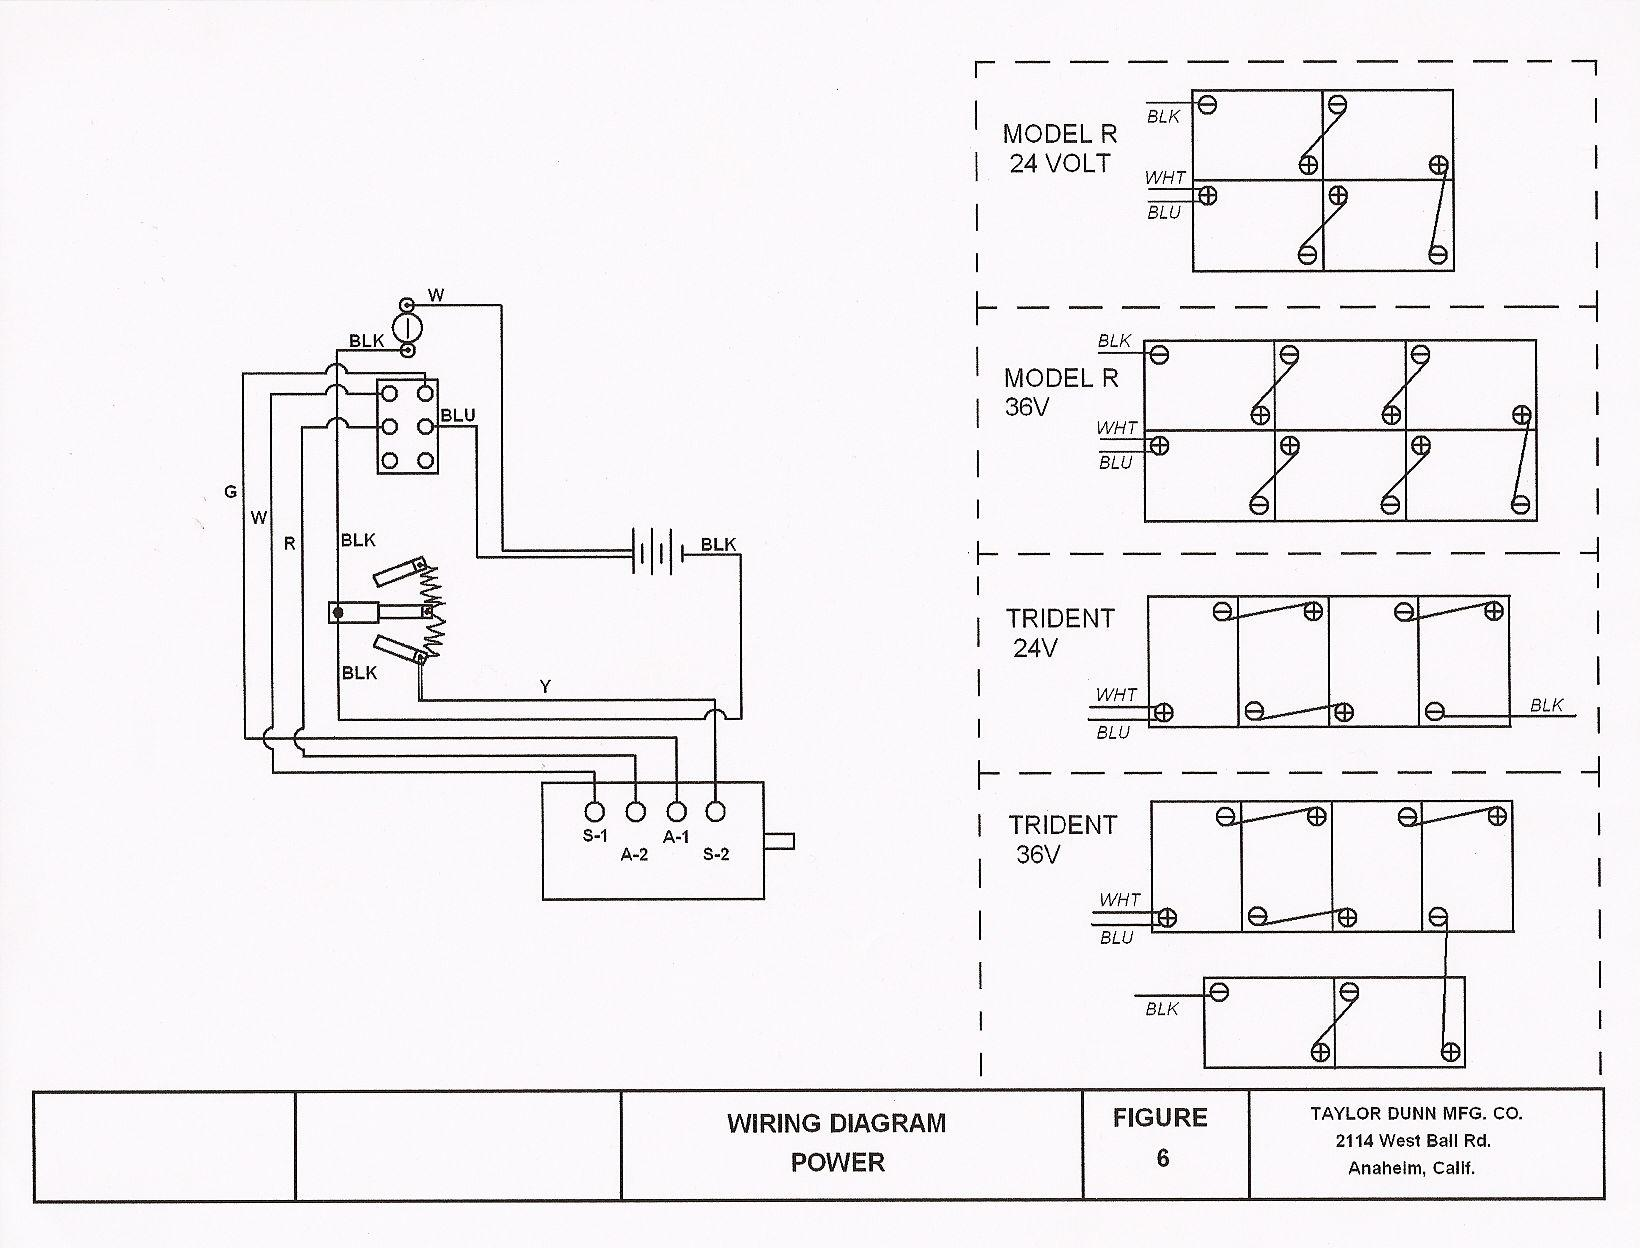 trident02 vintagegolfcartparts com wiring diagram for a 36 volt taylor dunn cart at n-0.co